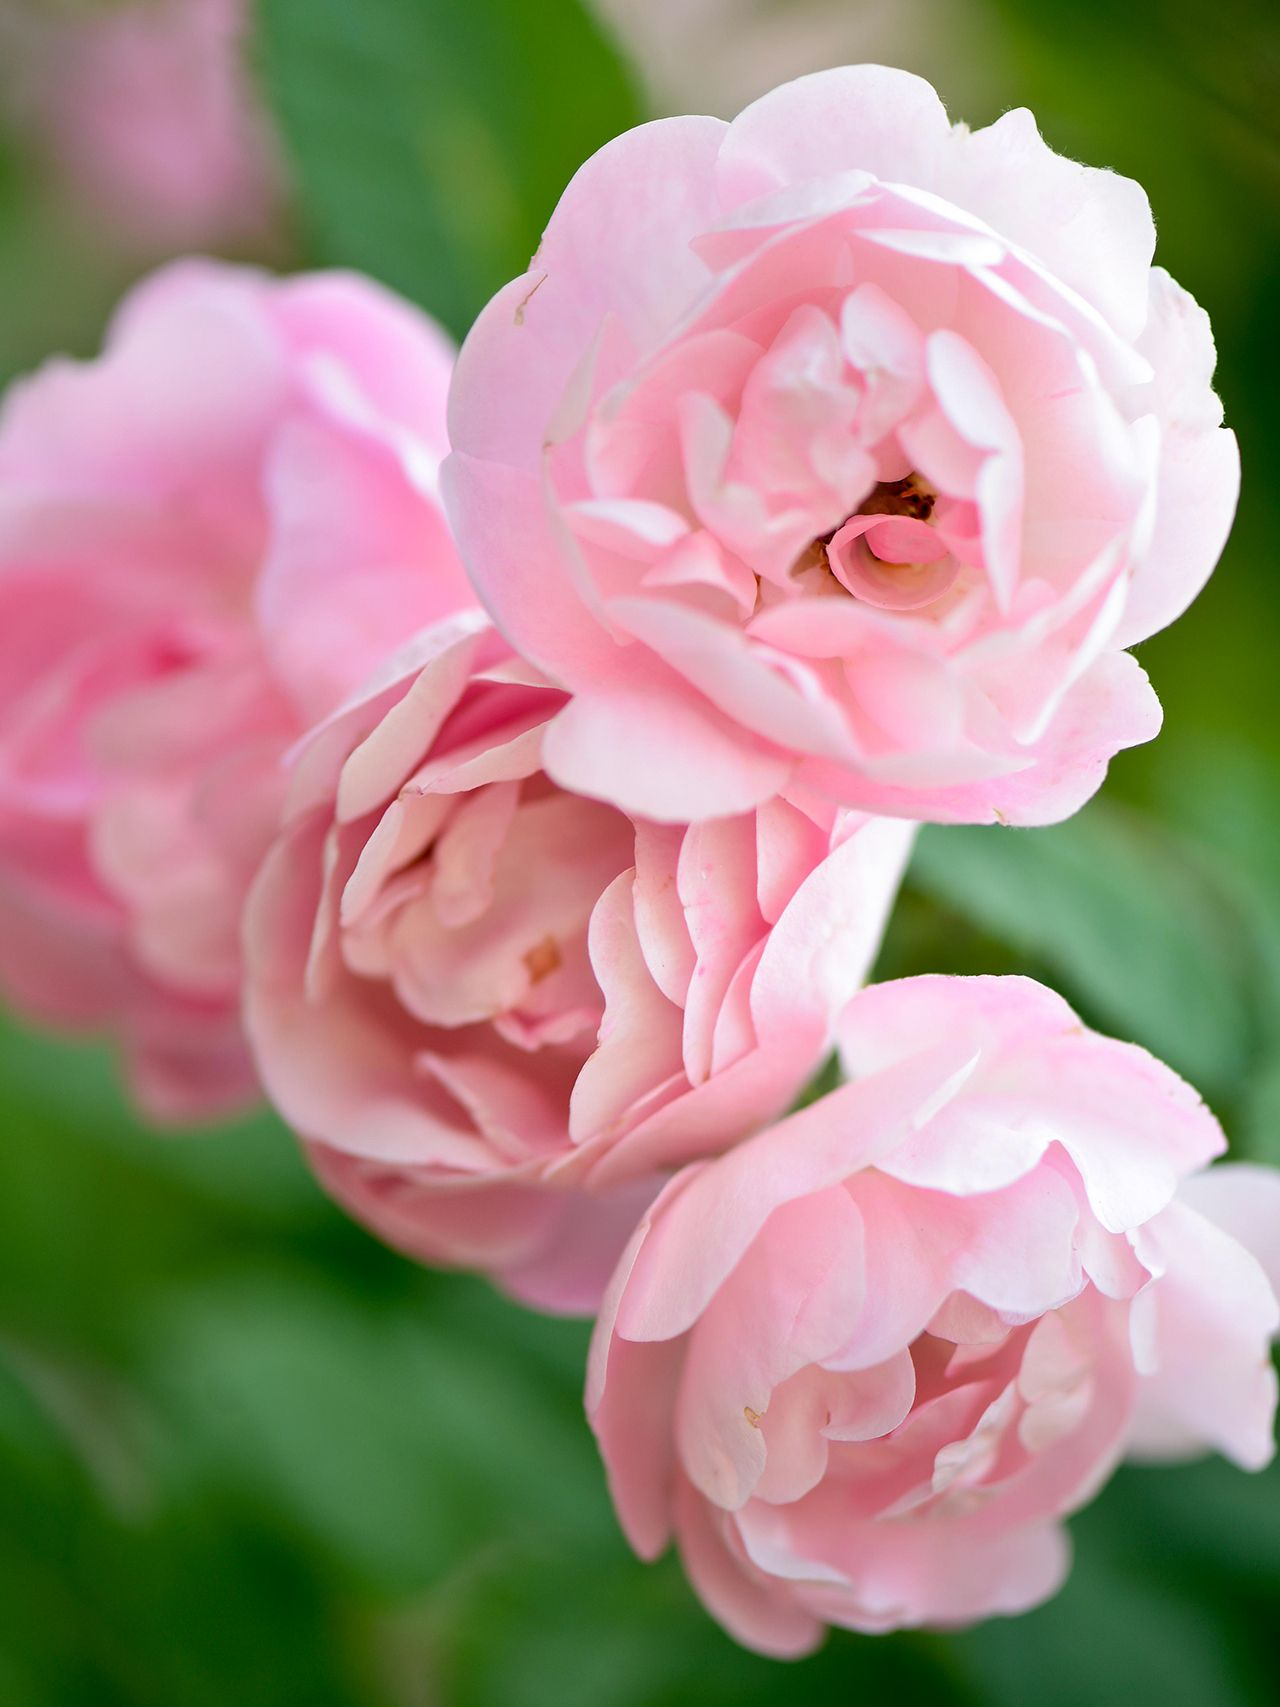 How To Grow Beautiful Antique Roses In Your Garden In 2020 Fragrant Roses Antique Roses Growing Roses